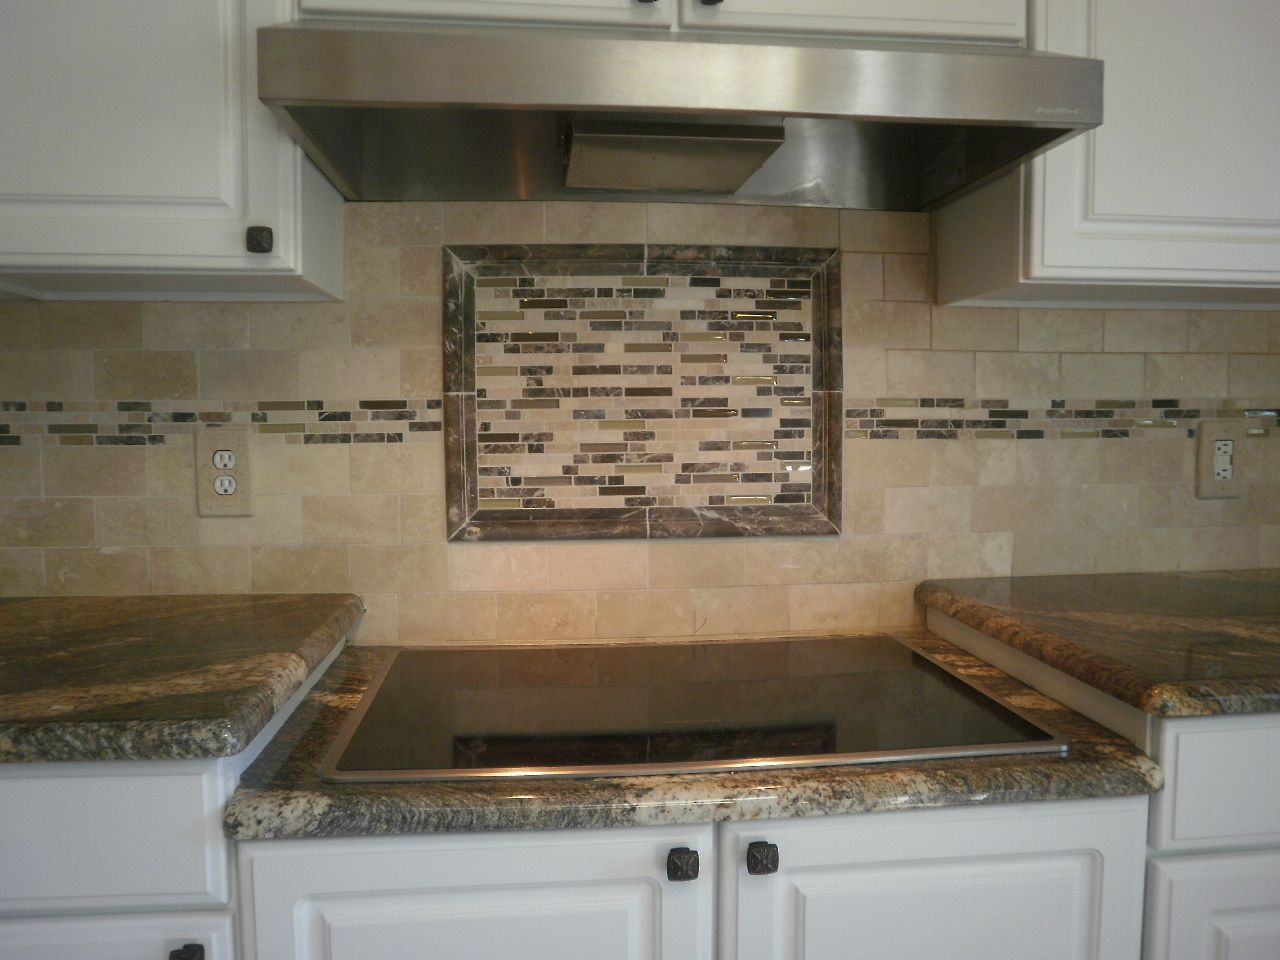 Backsplash Tile For Kitchen Travertine With Inlaid Rectangular Mosaic Tiles At Destefano